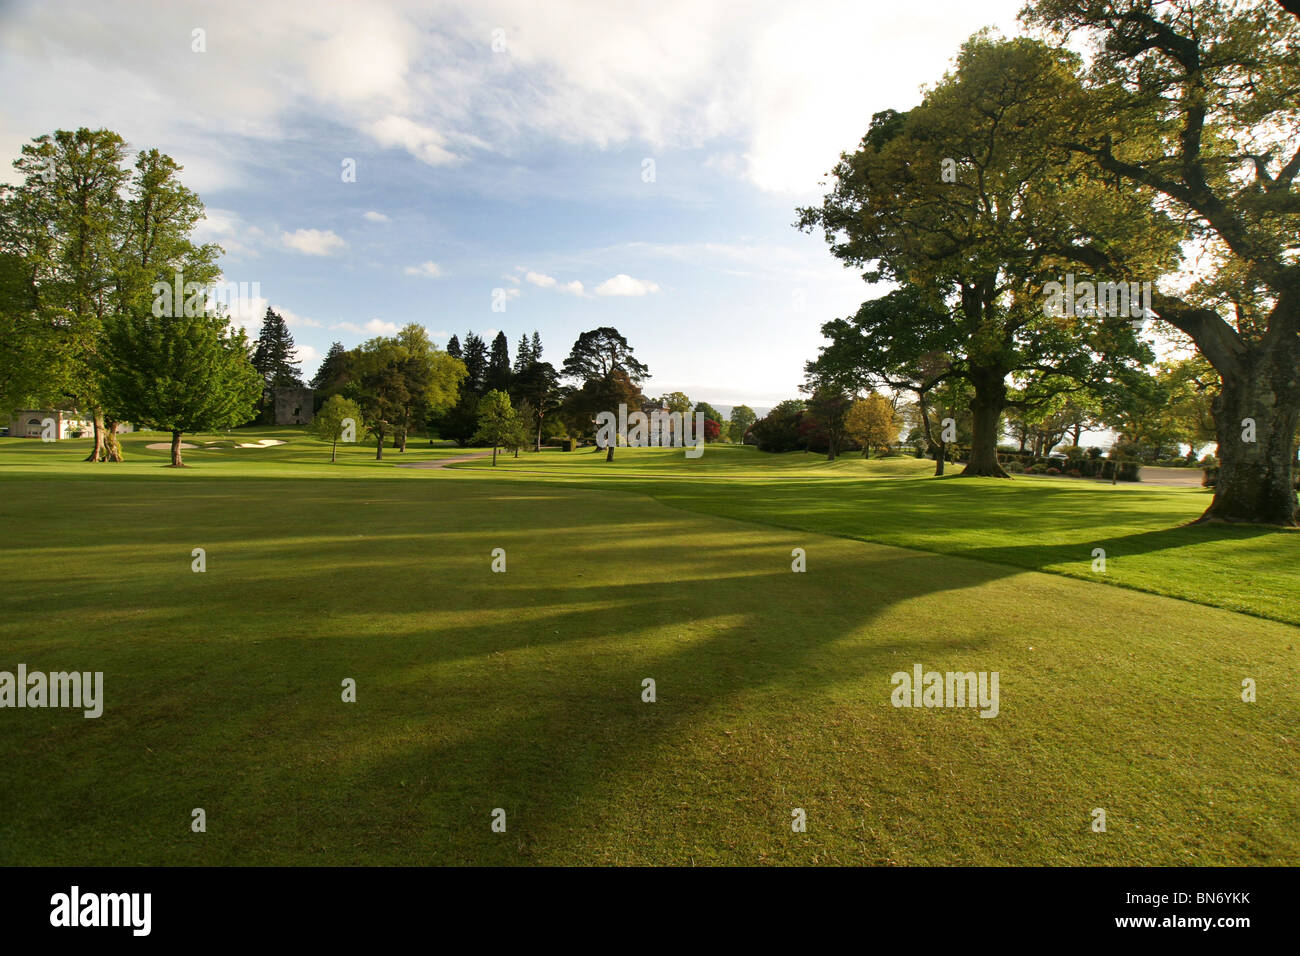 Loch Lomond Golf Course, Glasgow, Scotland Hole 9 Fairway - Stock Image